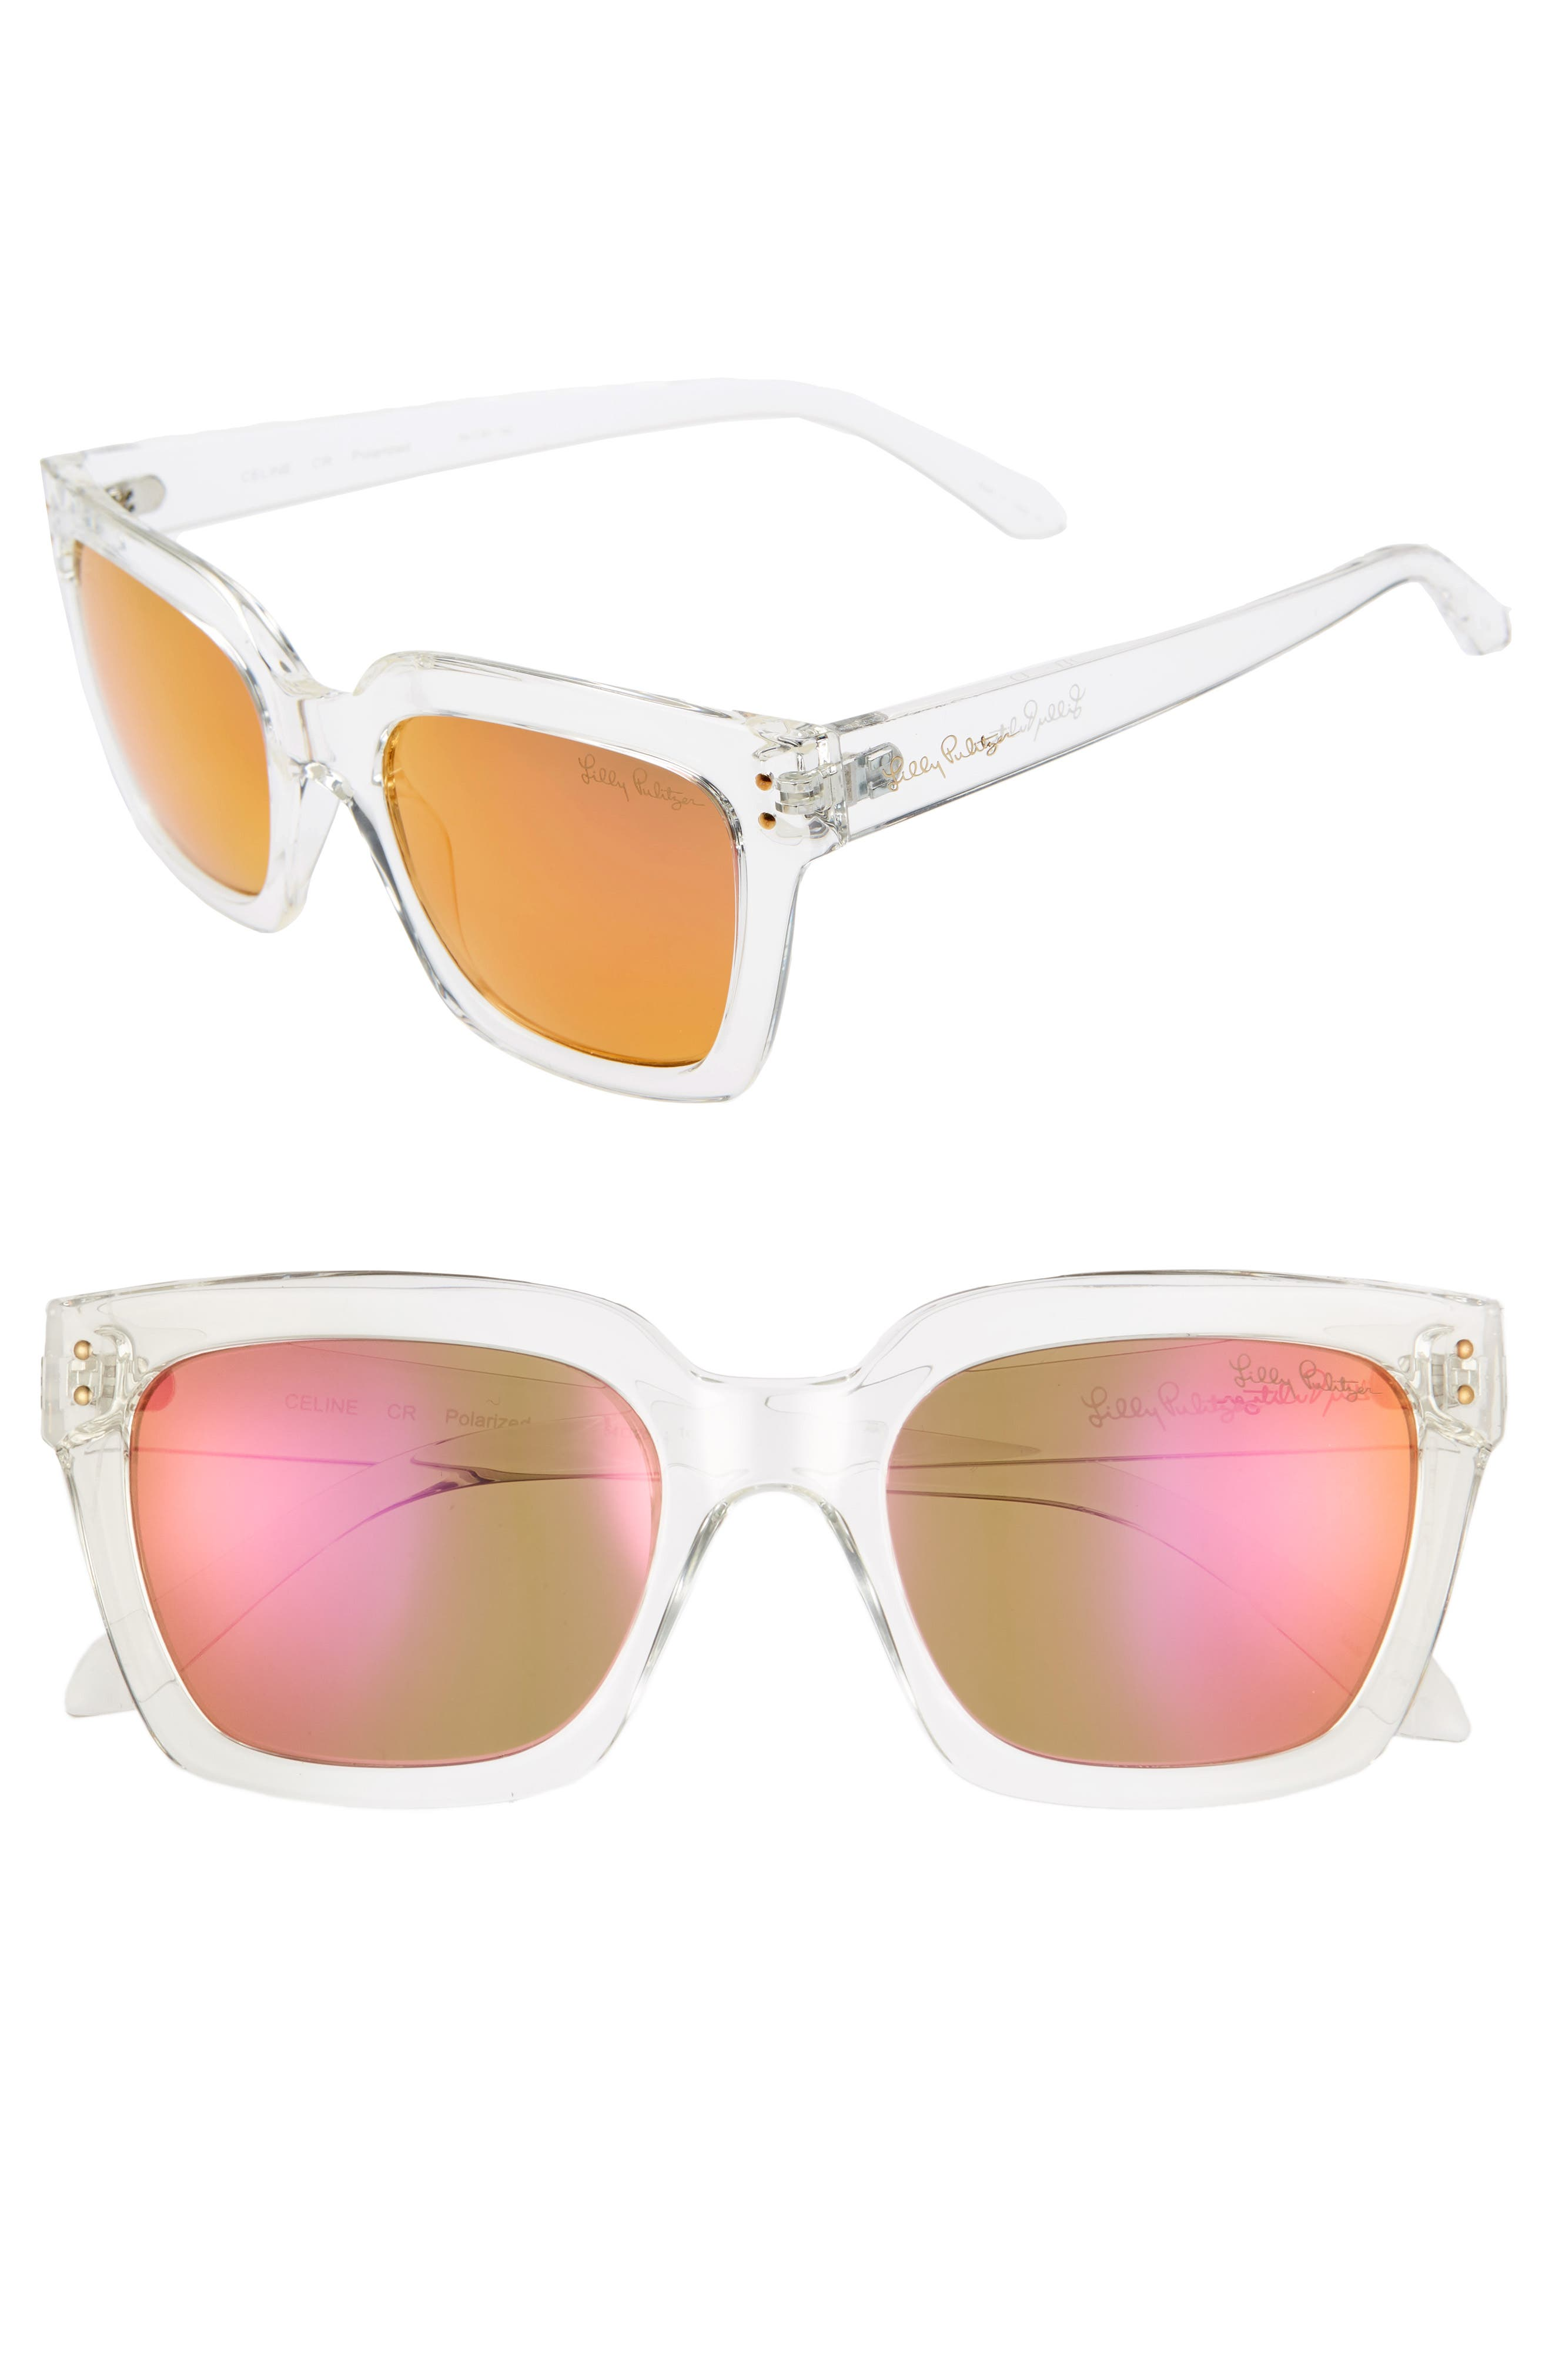 Lilly Pulitzer Celine 5m Polarized Square Sunglasses - Crystal Clear/ Pink Mirror